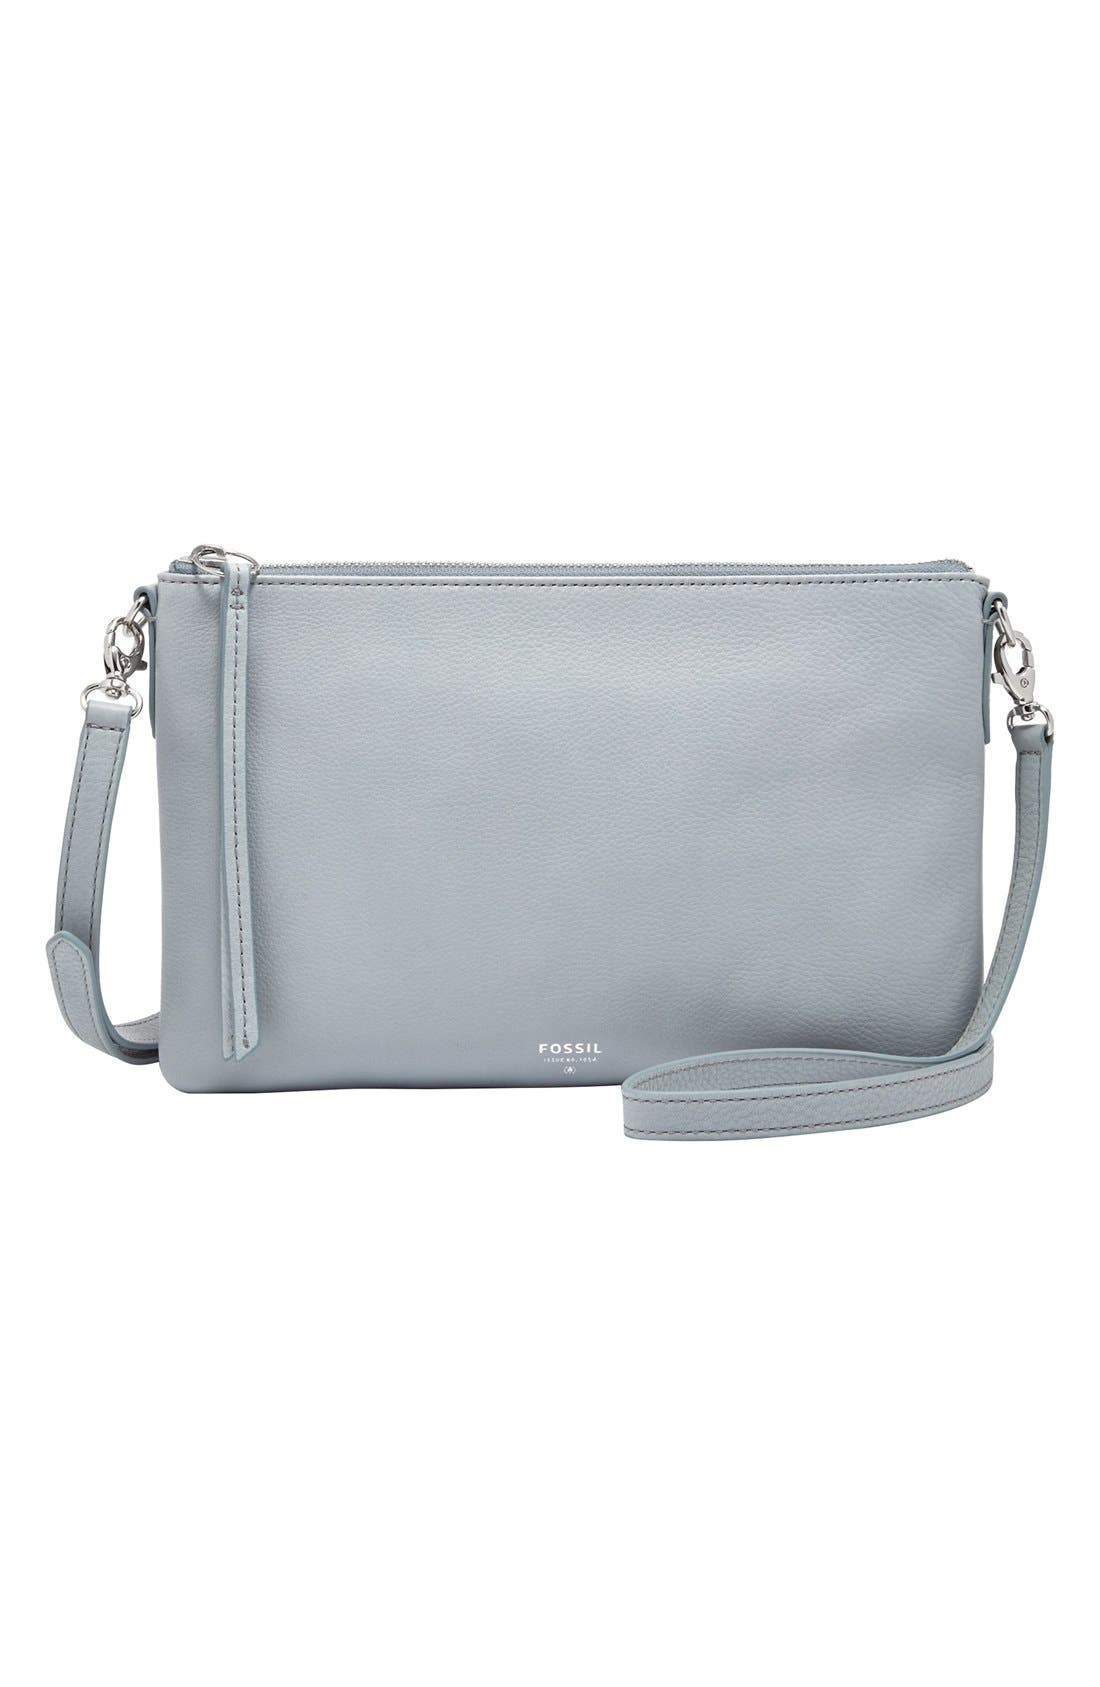 Main Image - Fossil 'Sydney' Crossbody Bag